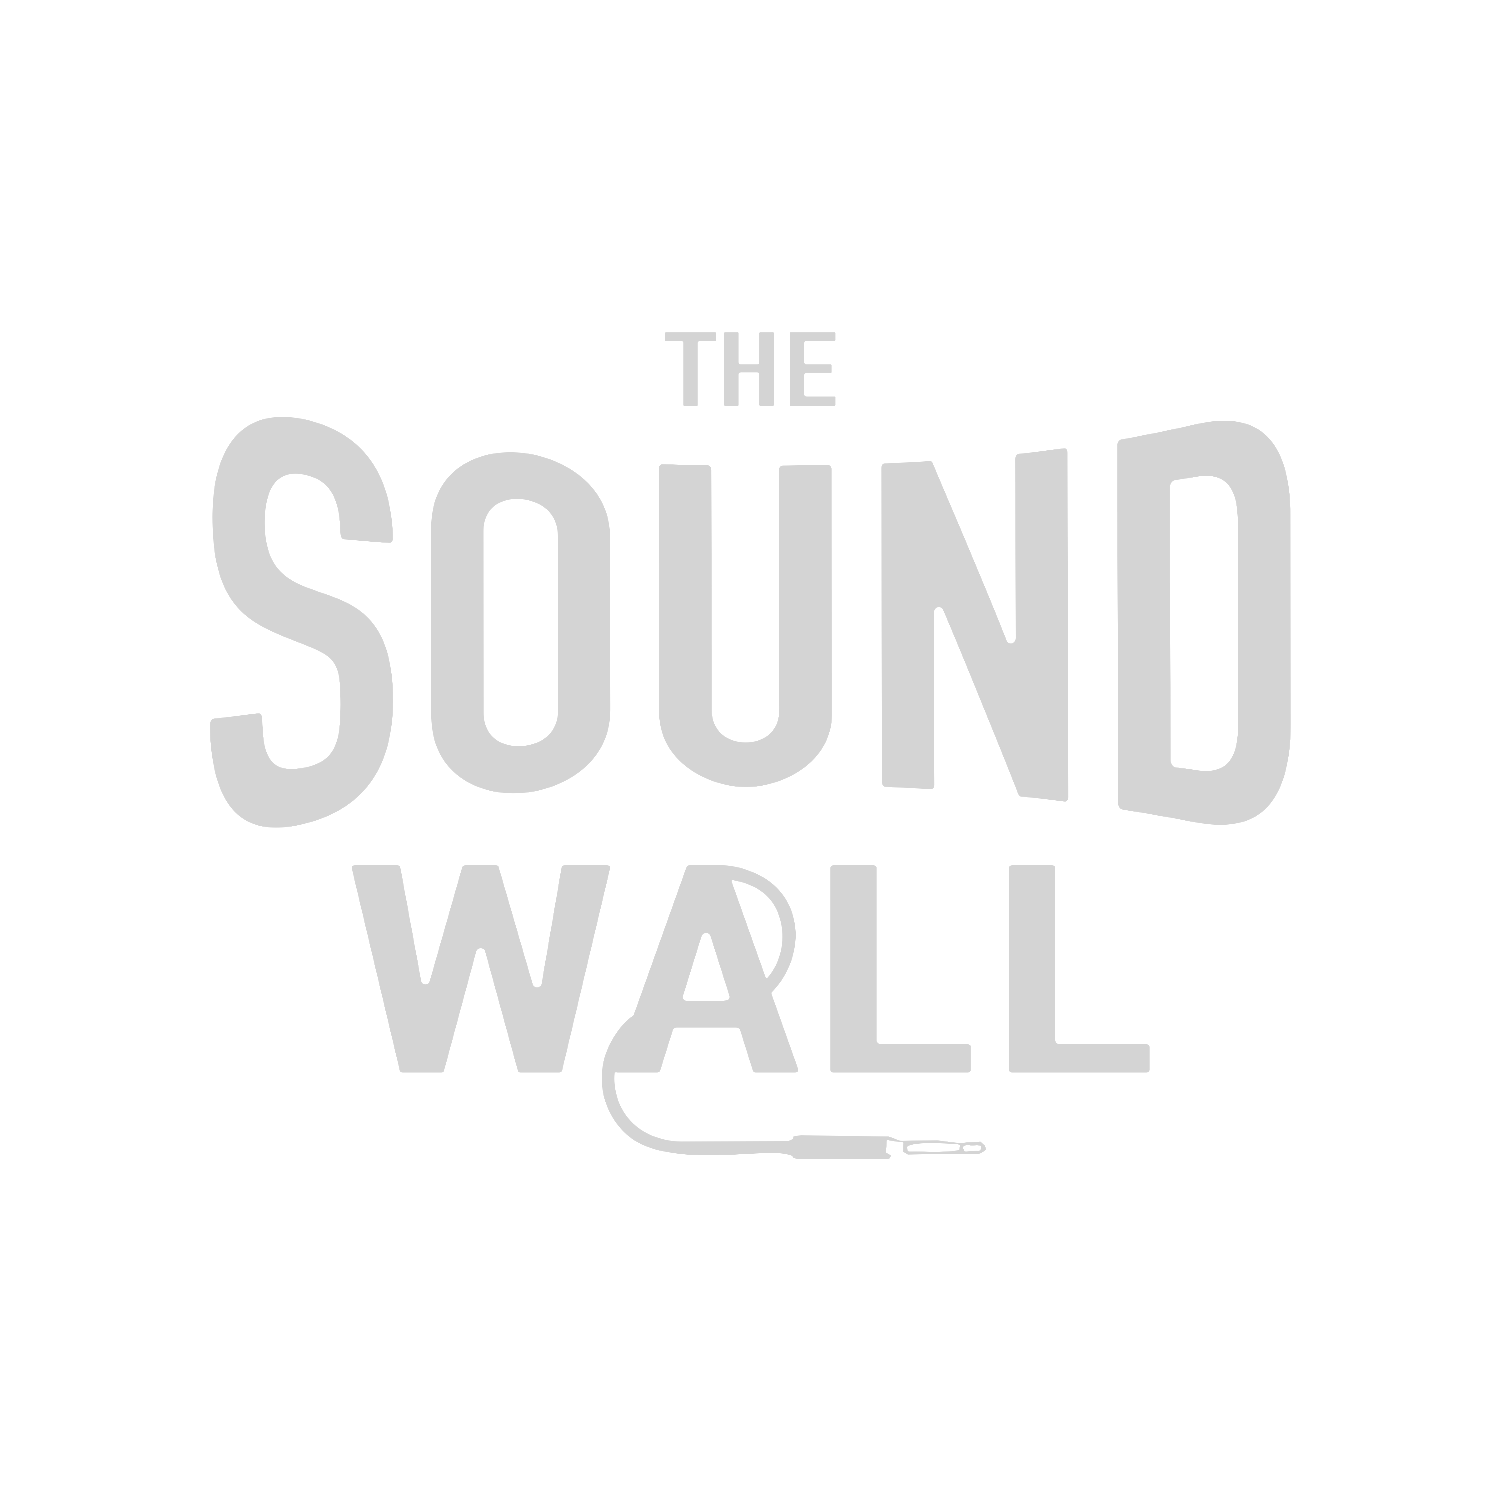 The Sound Wall